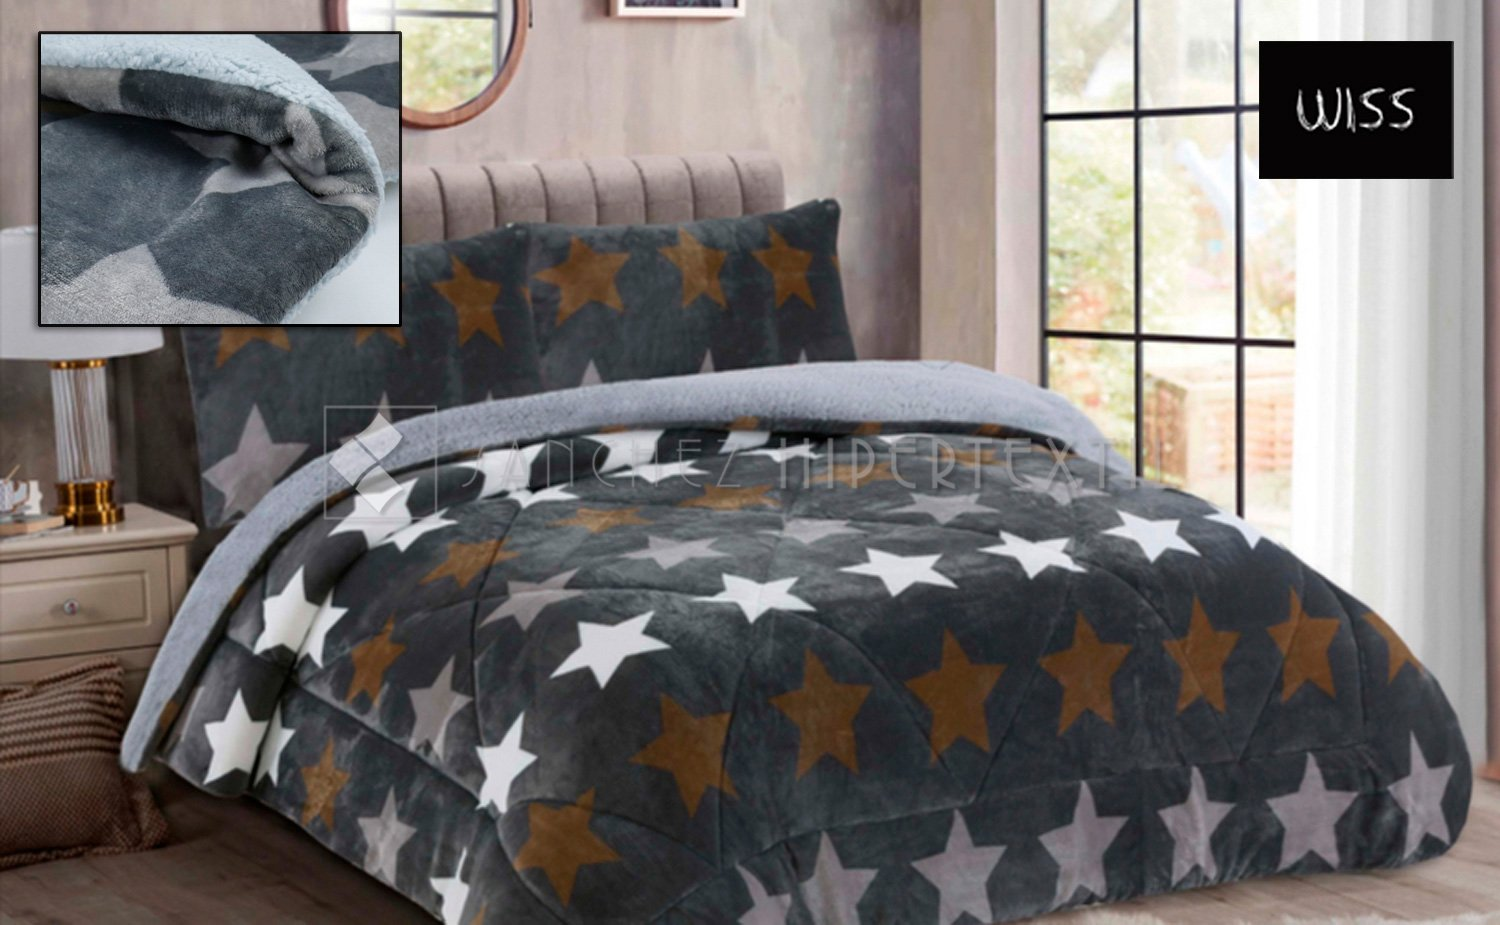 Sherpa Quilt 3 layers SIARA STARS + Pillowcase by Wiss